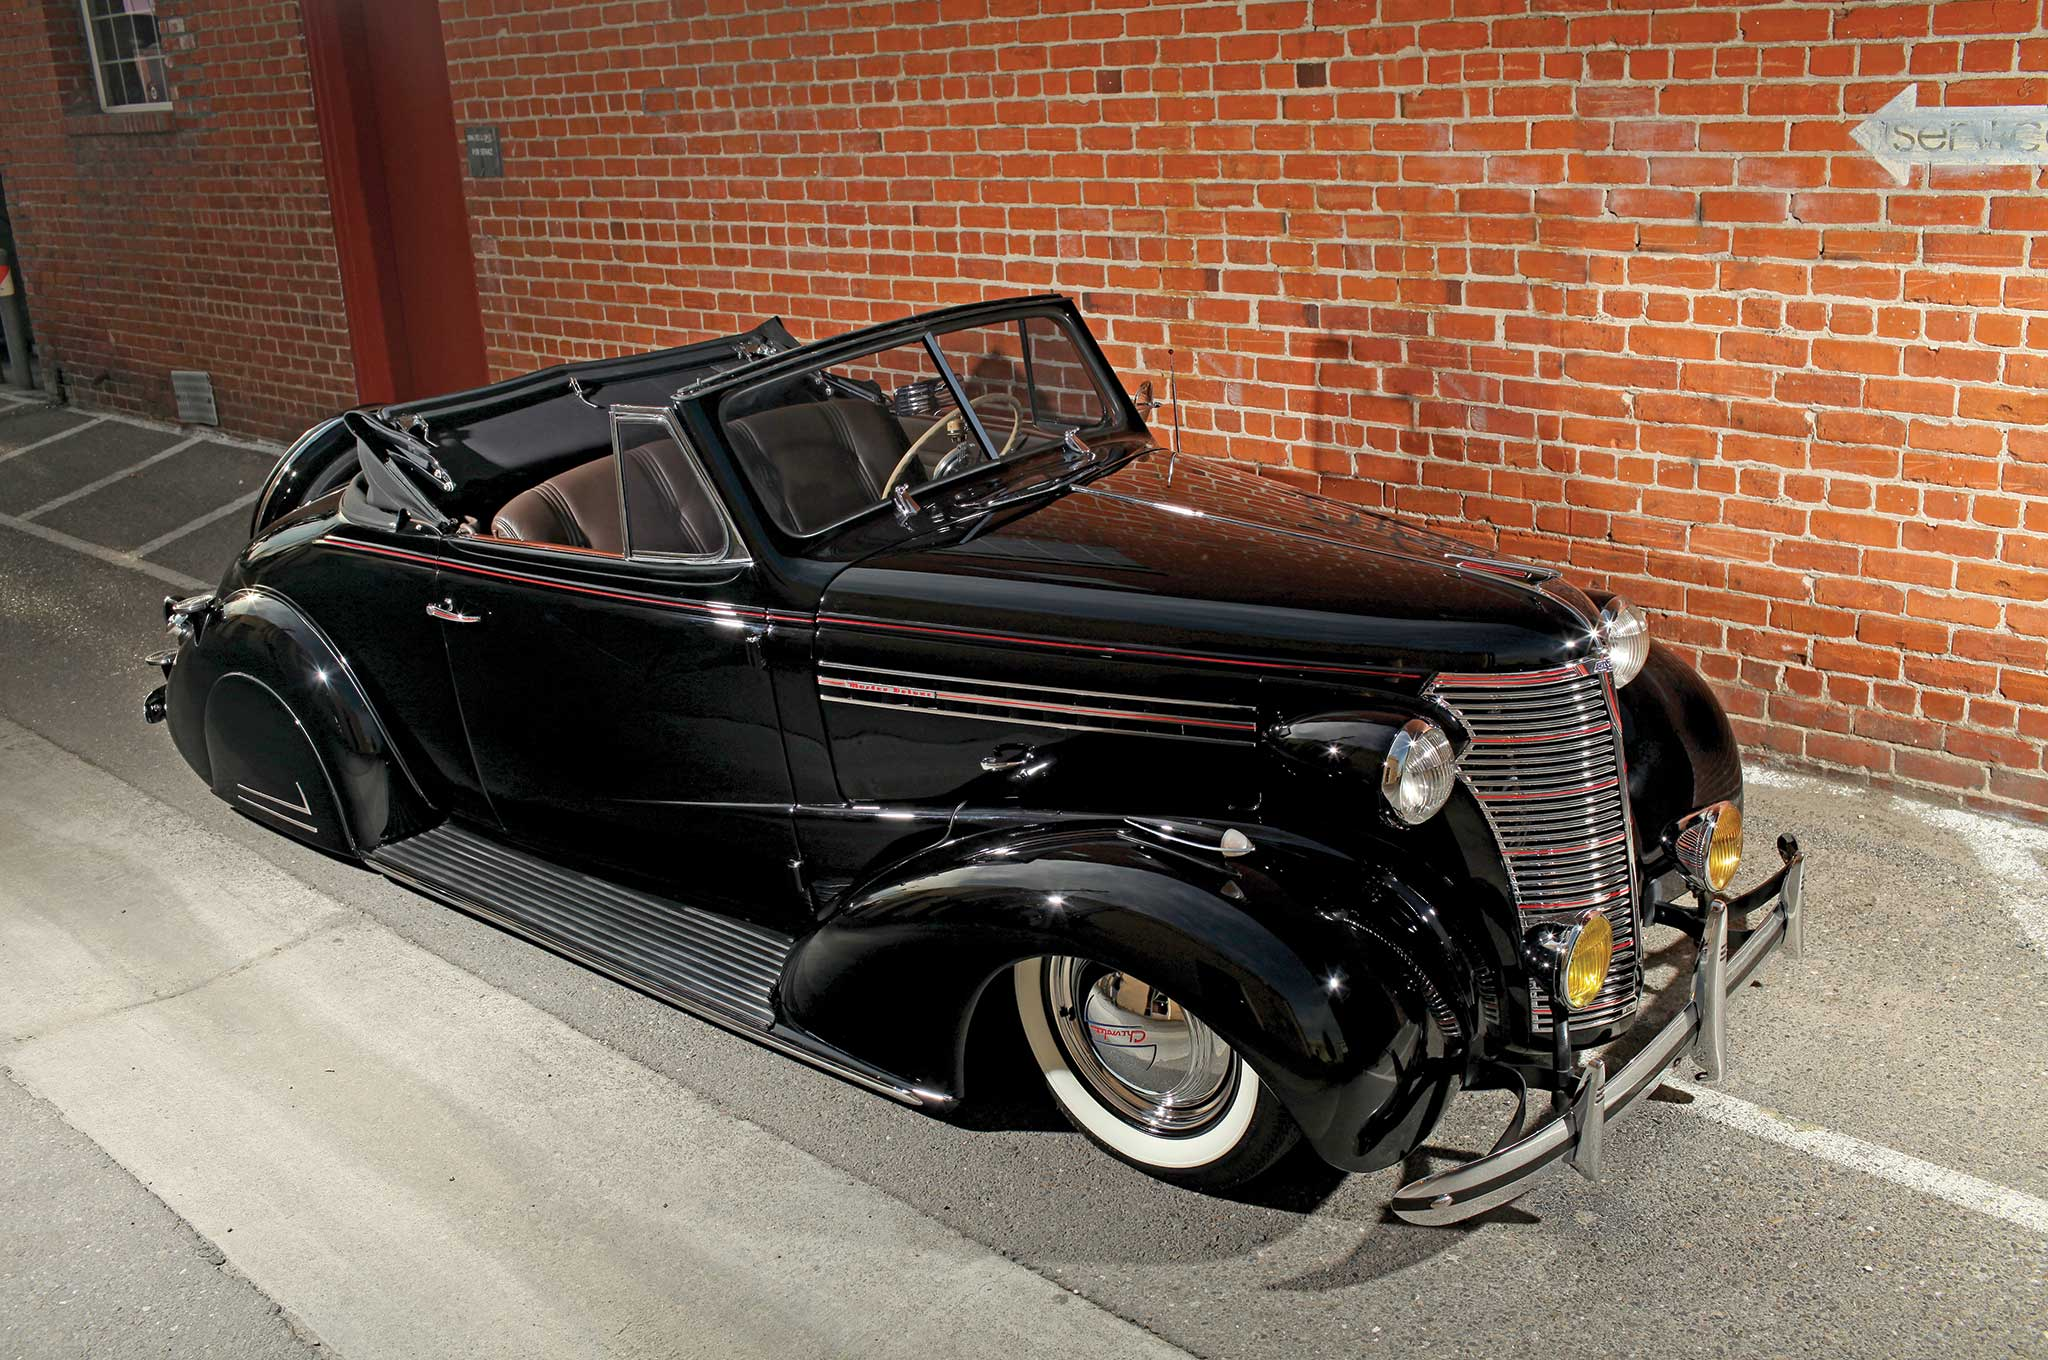 1938 Chevrolet Cabriolet - Piece Offering - Lowrider